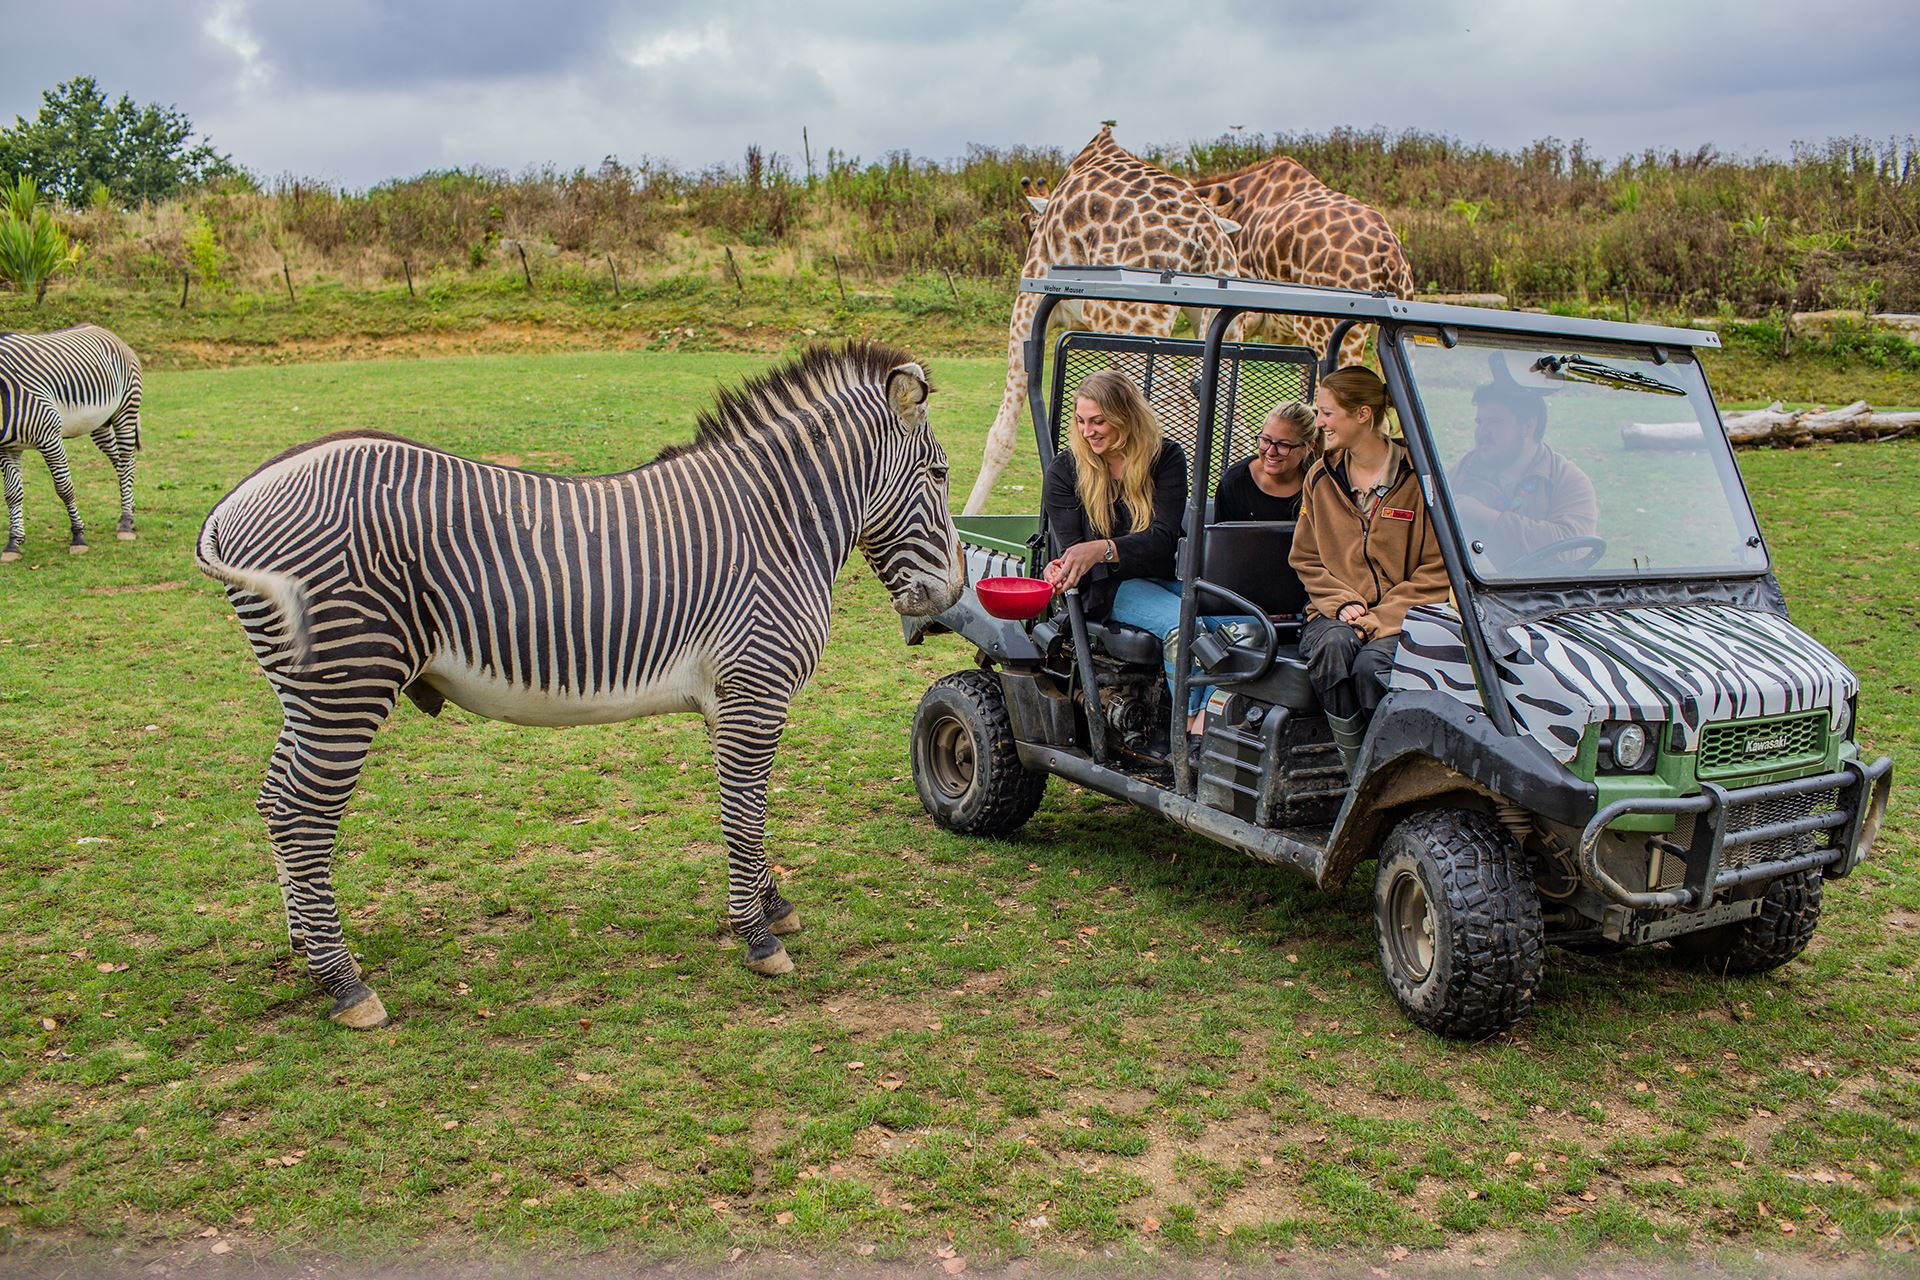 VIP Zebra Feeding Experience at Chessington